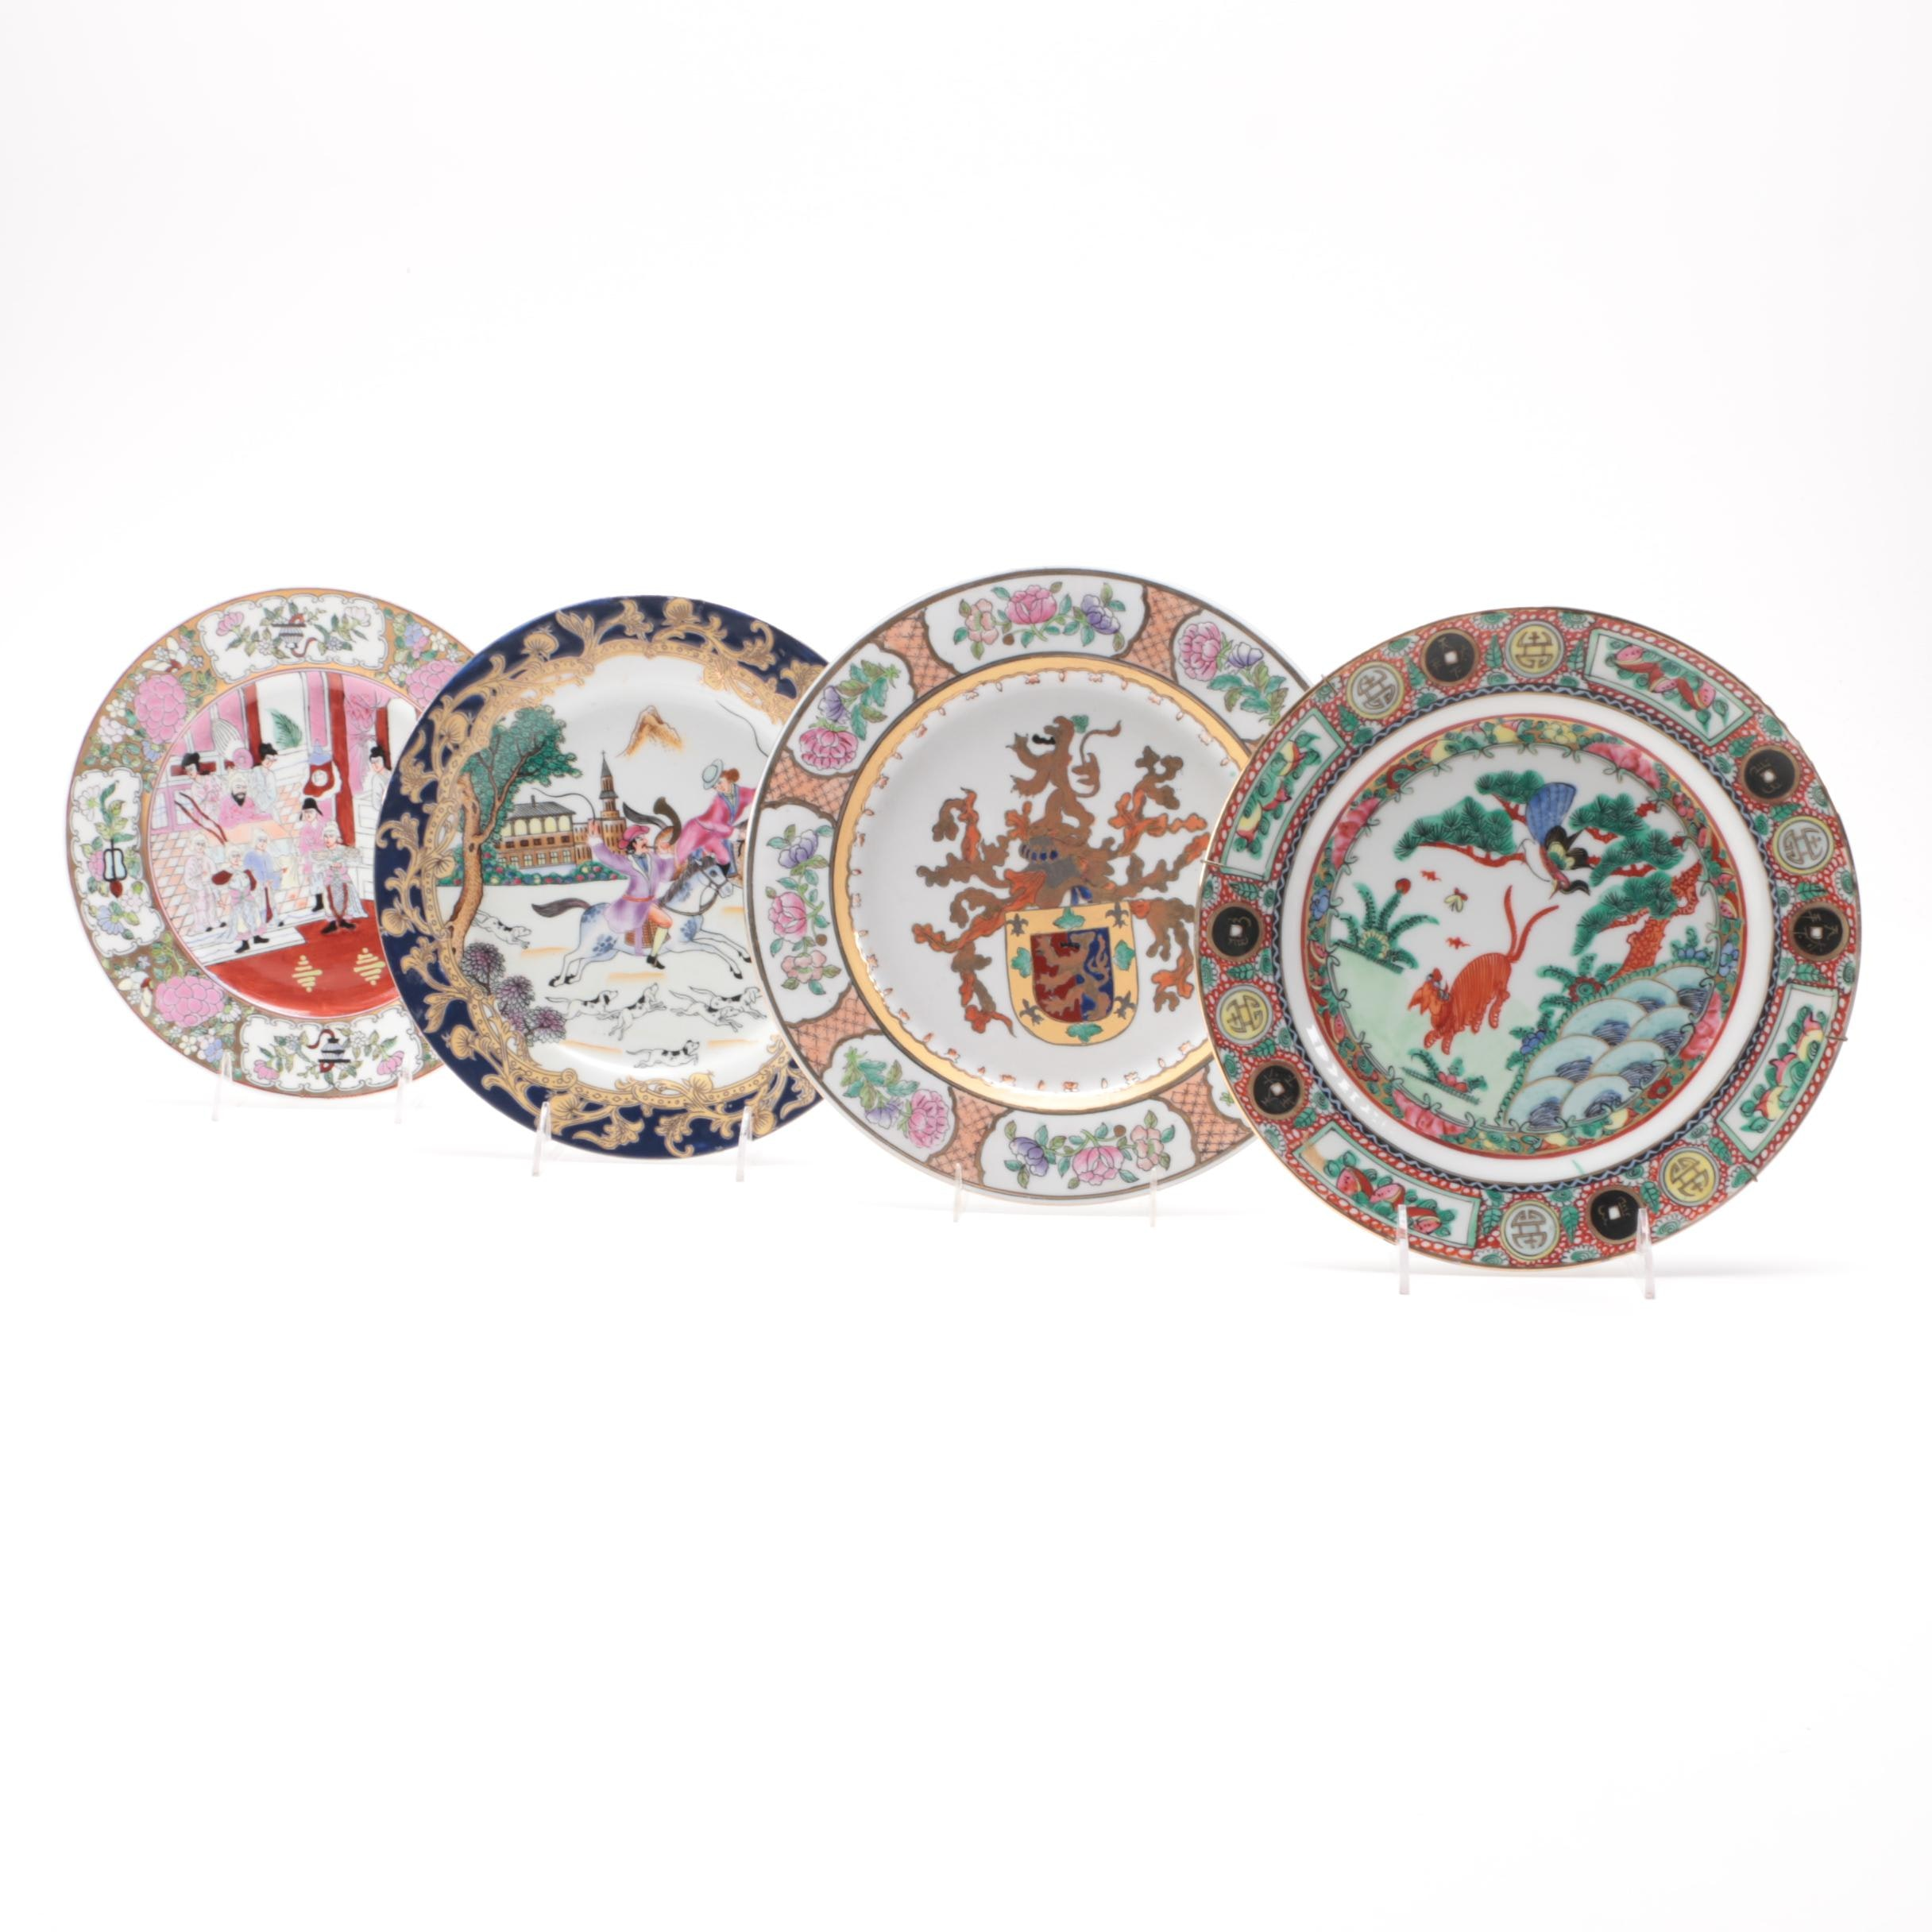 Collection of Decorative Chinese Plates